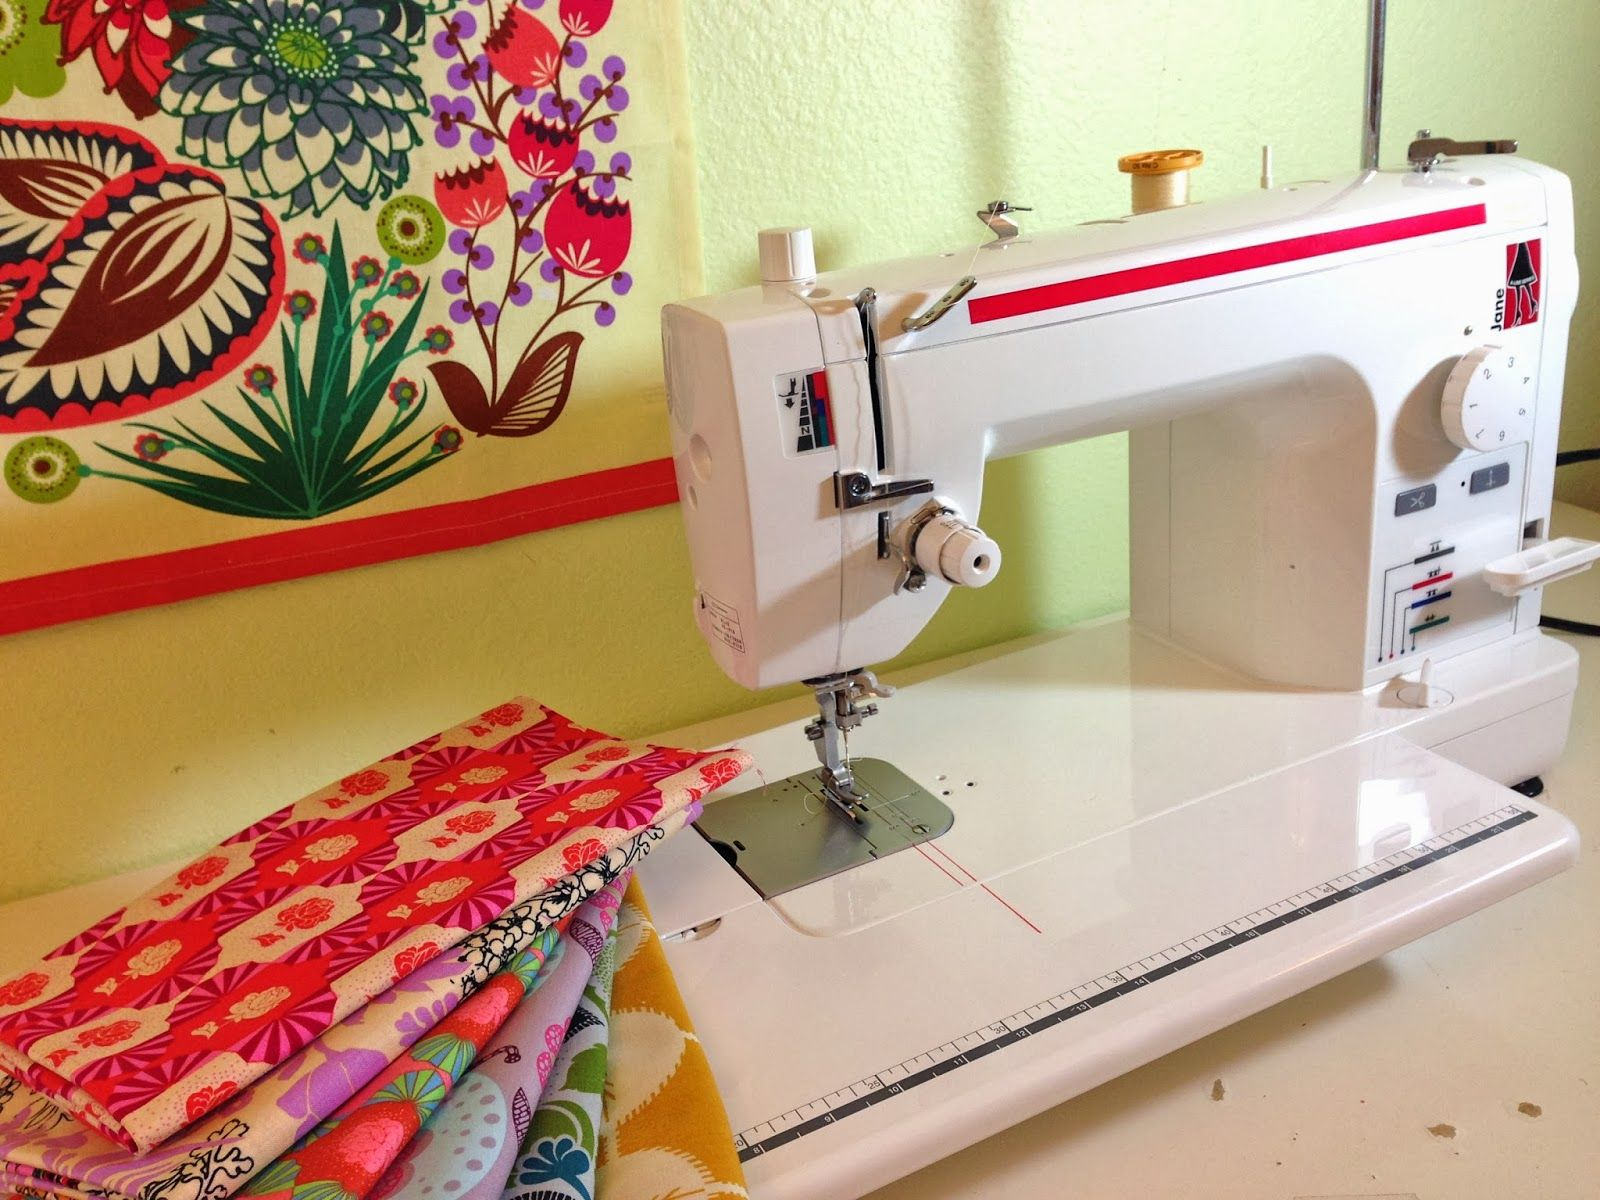 Baby lock jane a sewing machine review quilt love pinterest baby lock jane a sewing machine review fandeluxe Choice Image